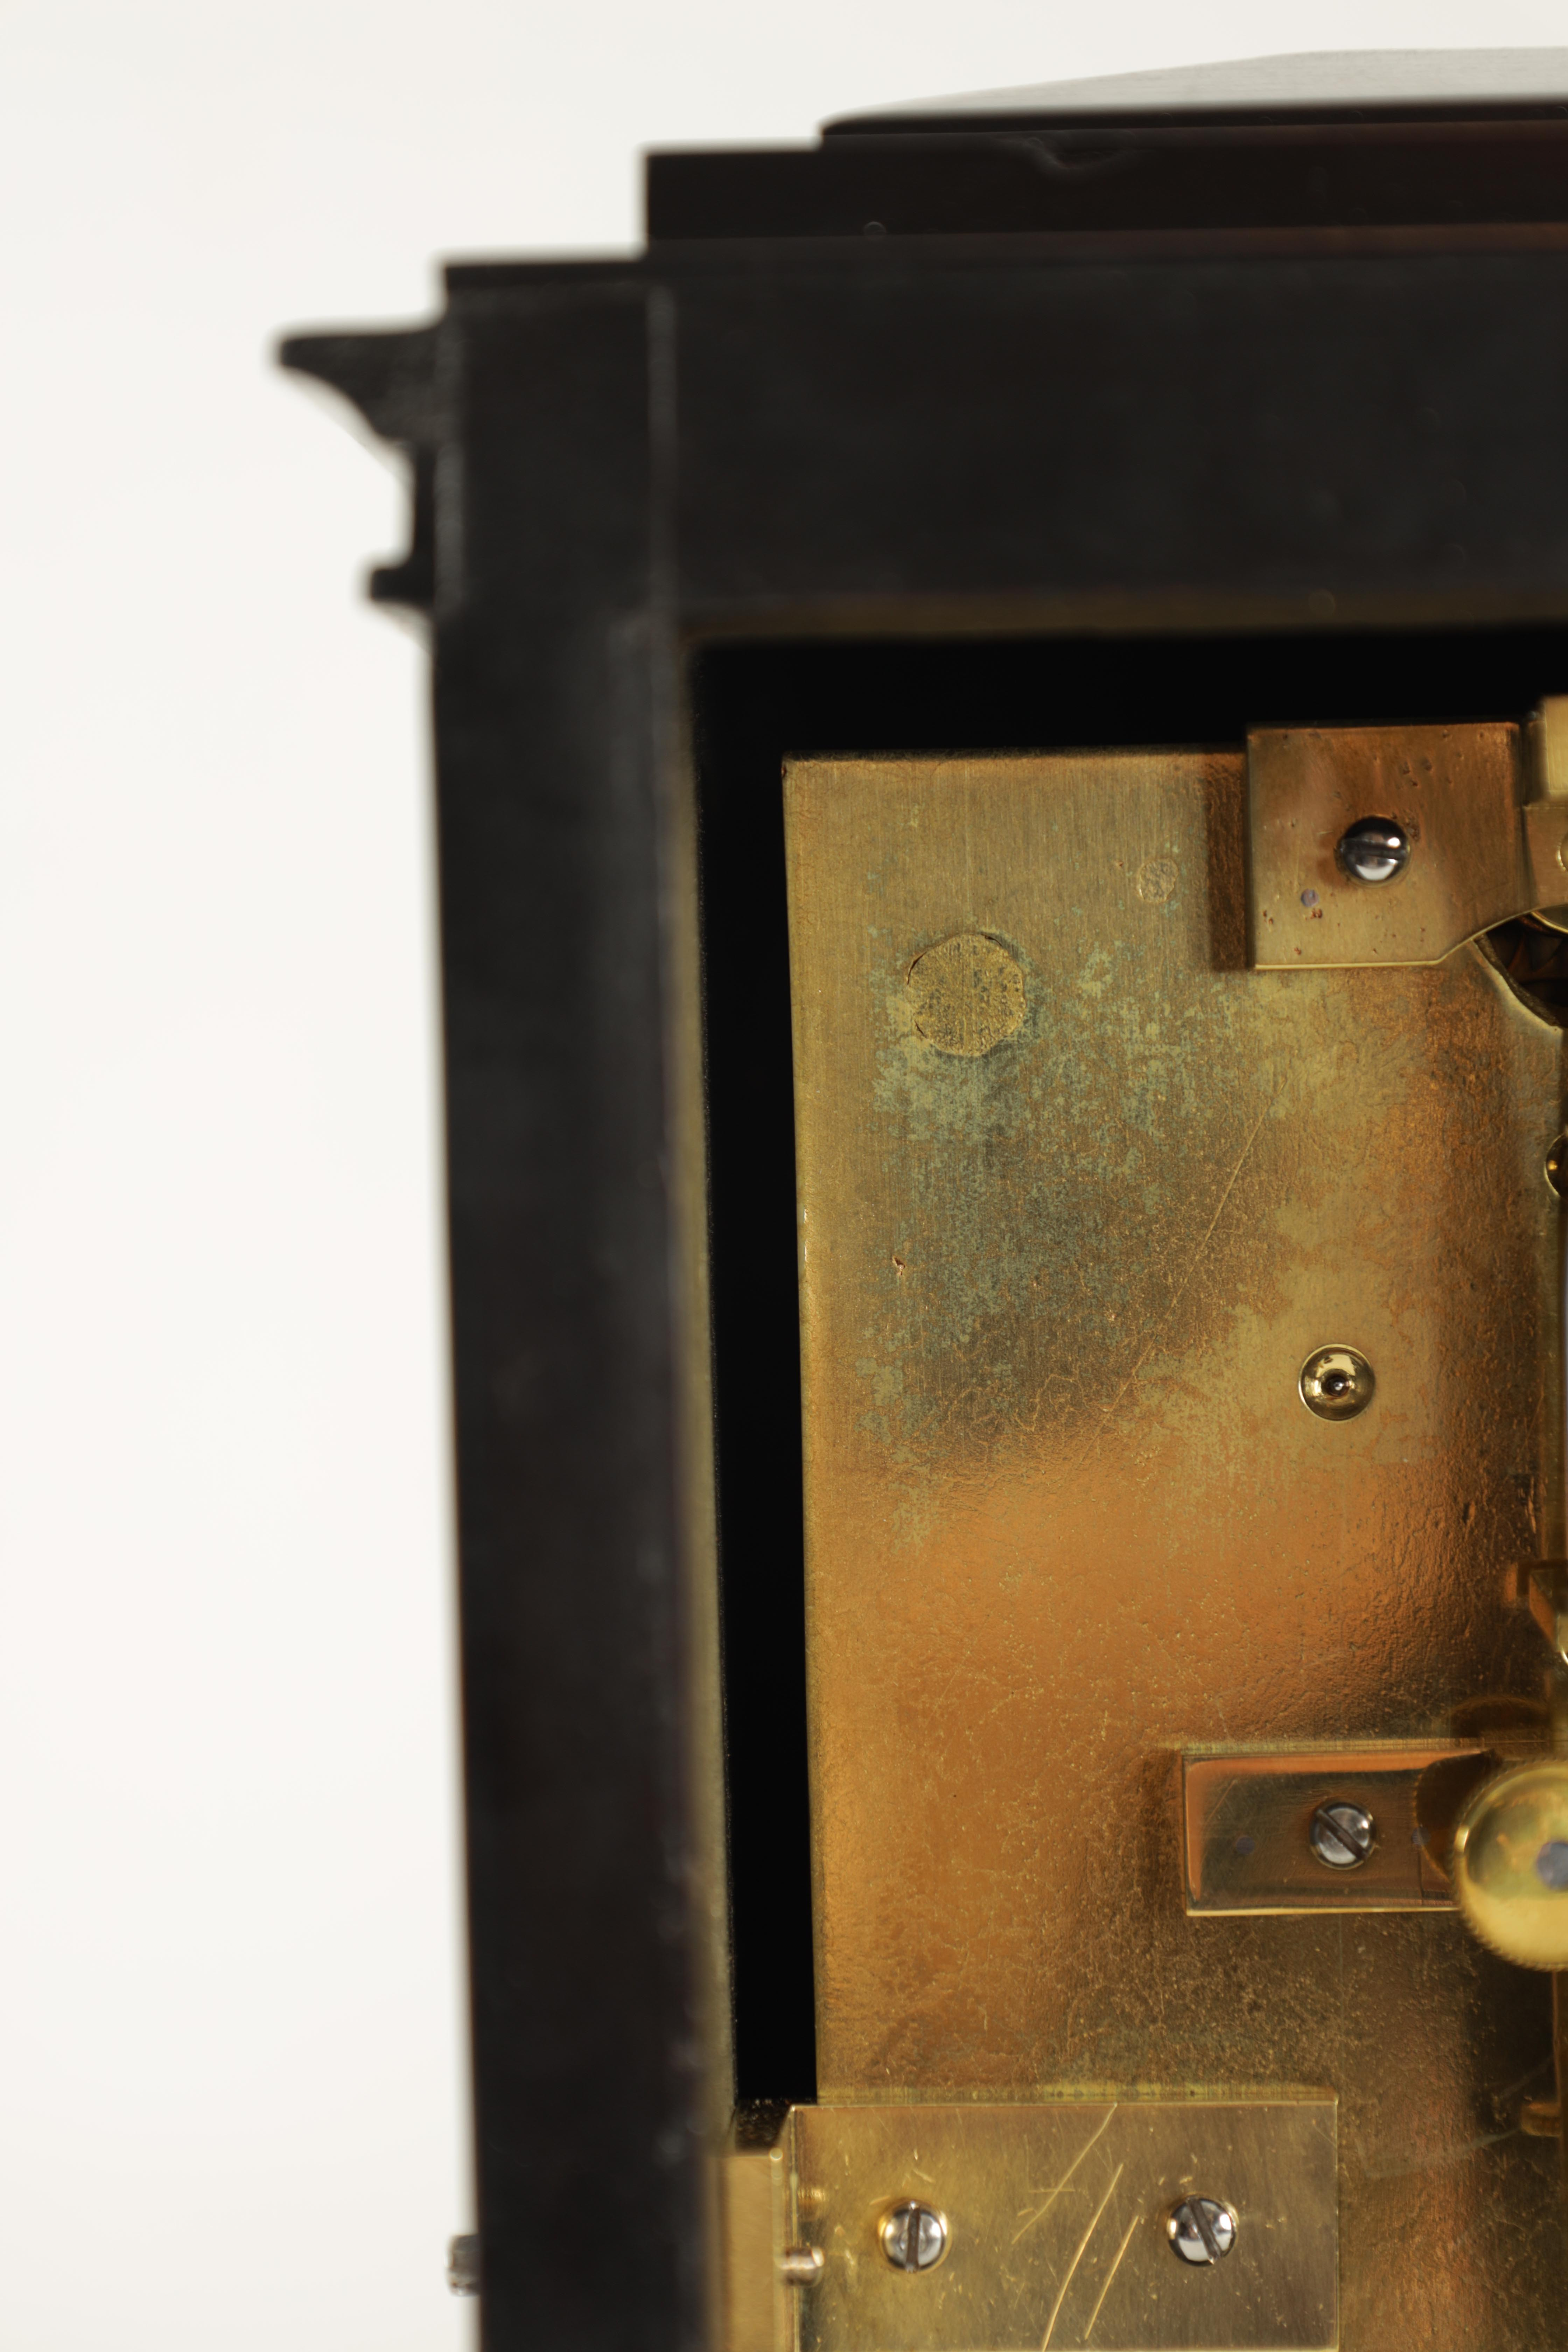 BARRAUDS & LUND, CORNHILL, LONDON. 1549 A FINE EARLY 19TH CENTURY REGENCY EBONISED ENGLISH FUSEE - Image 8 of 8